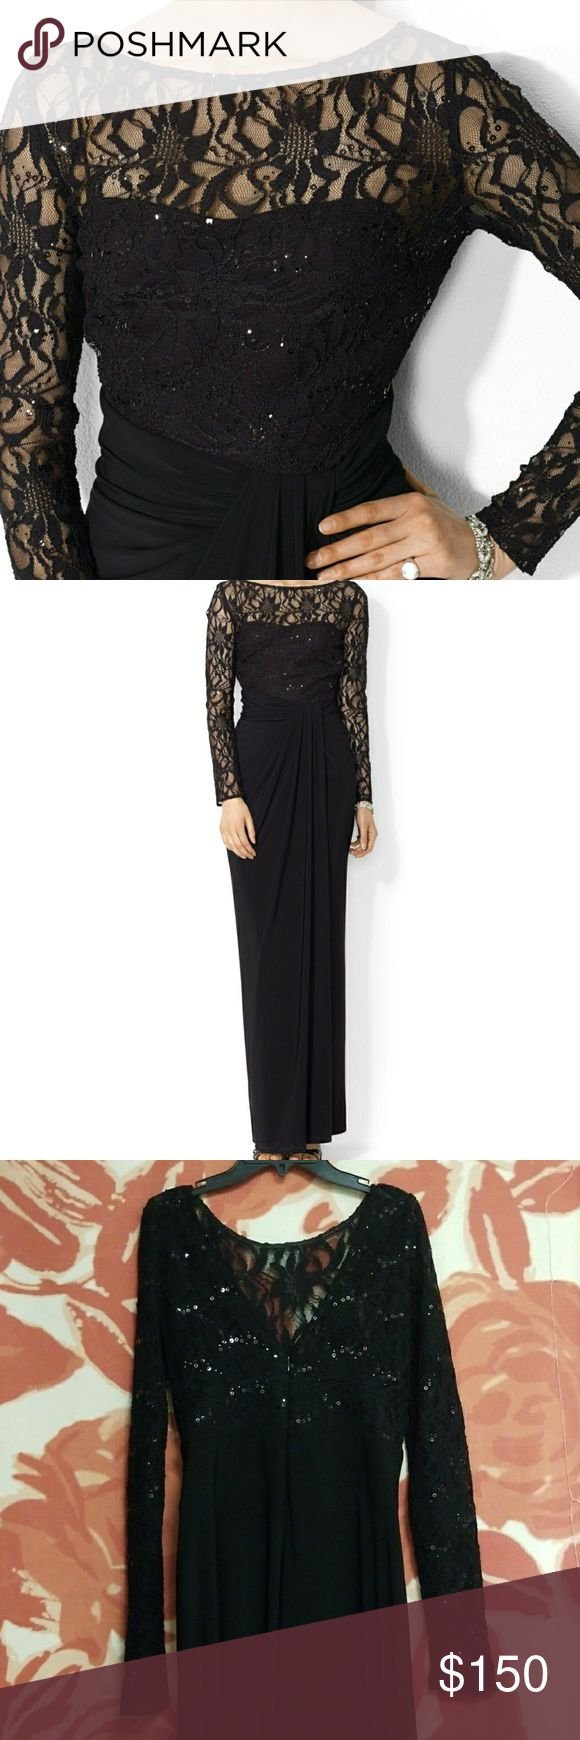 Ralph Lauren Evening Gown Floor Length Gown, long sleeve, Sequin mesh top.   V-neck back with zipper. Zipper works fine.   Worn Once.   I am 5'7 and the dress hits the floor on me while wearing no shoes. Ralph Lauren Dresses